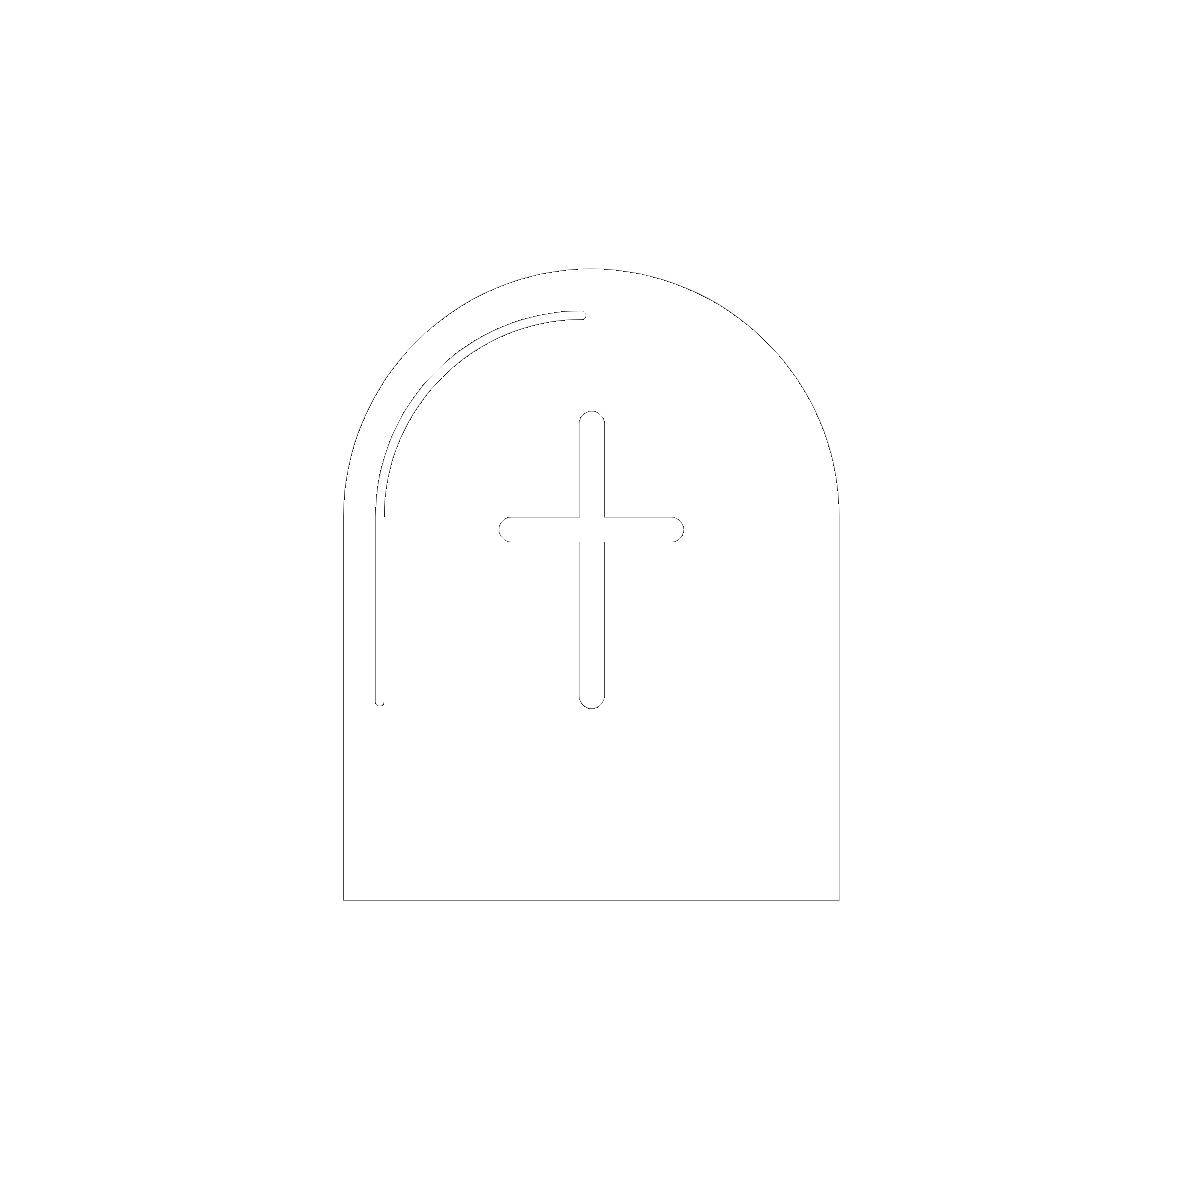 Theme The Mystery and Finality of Death